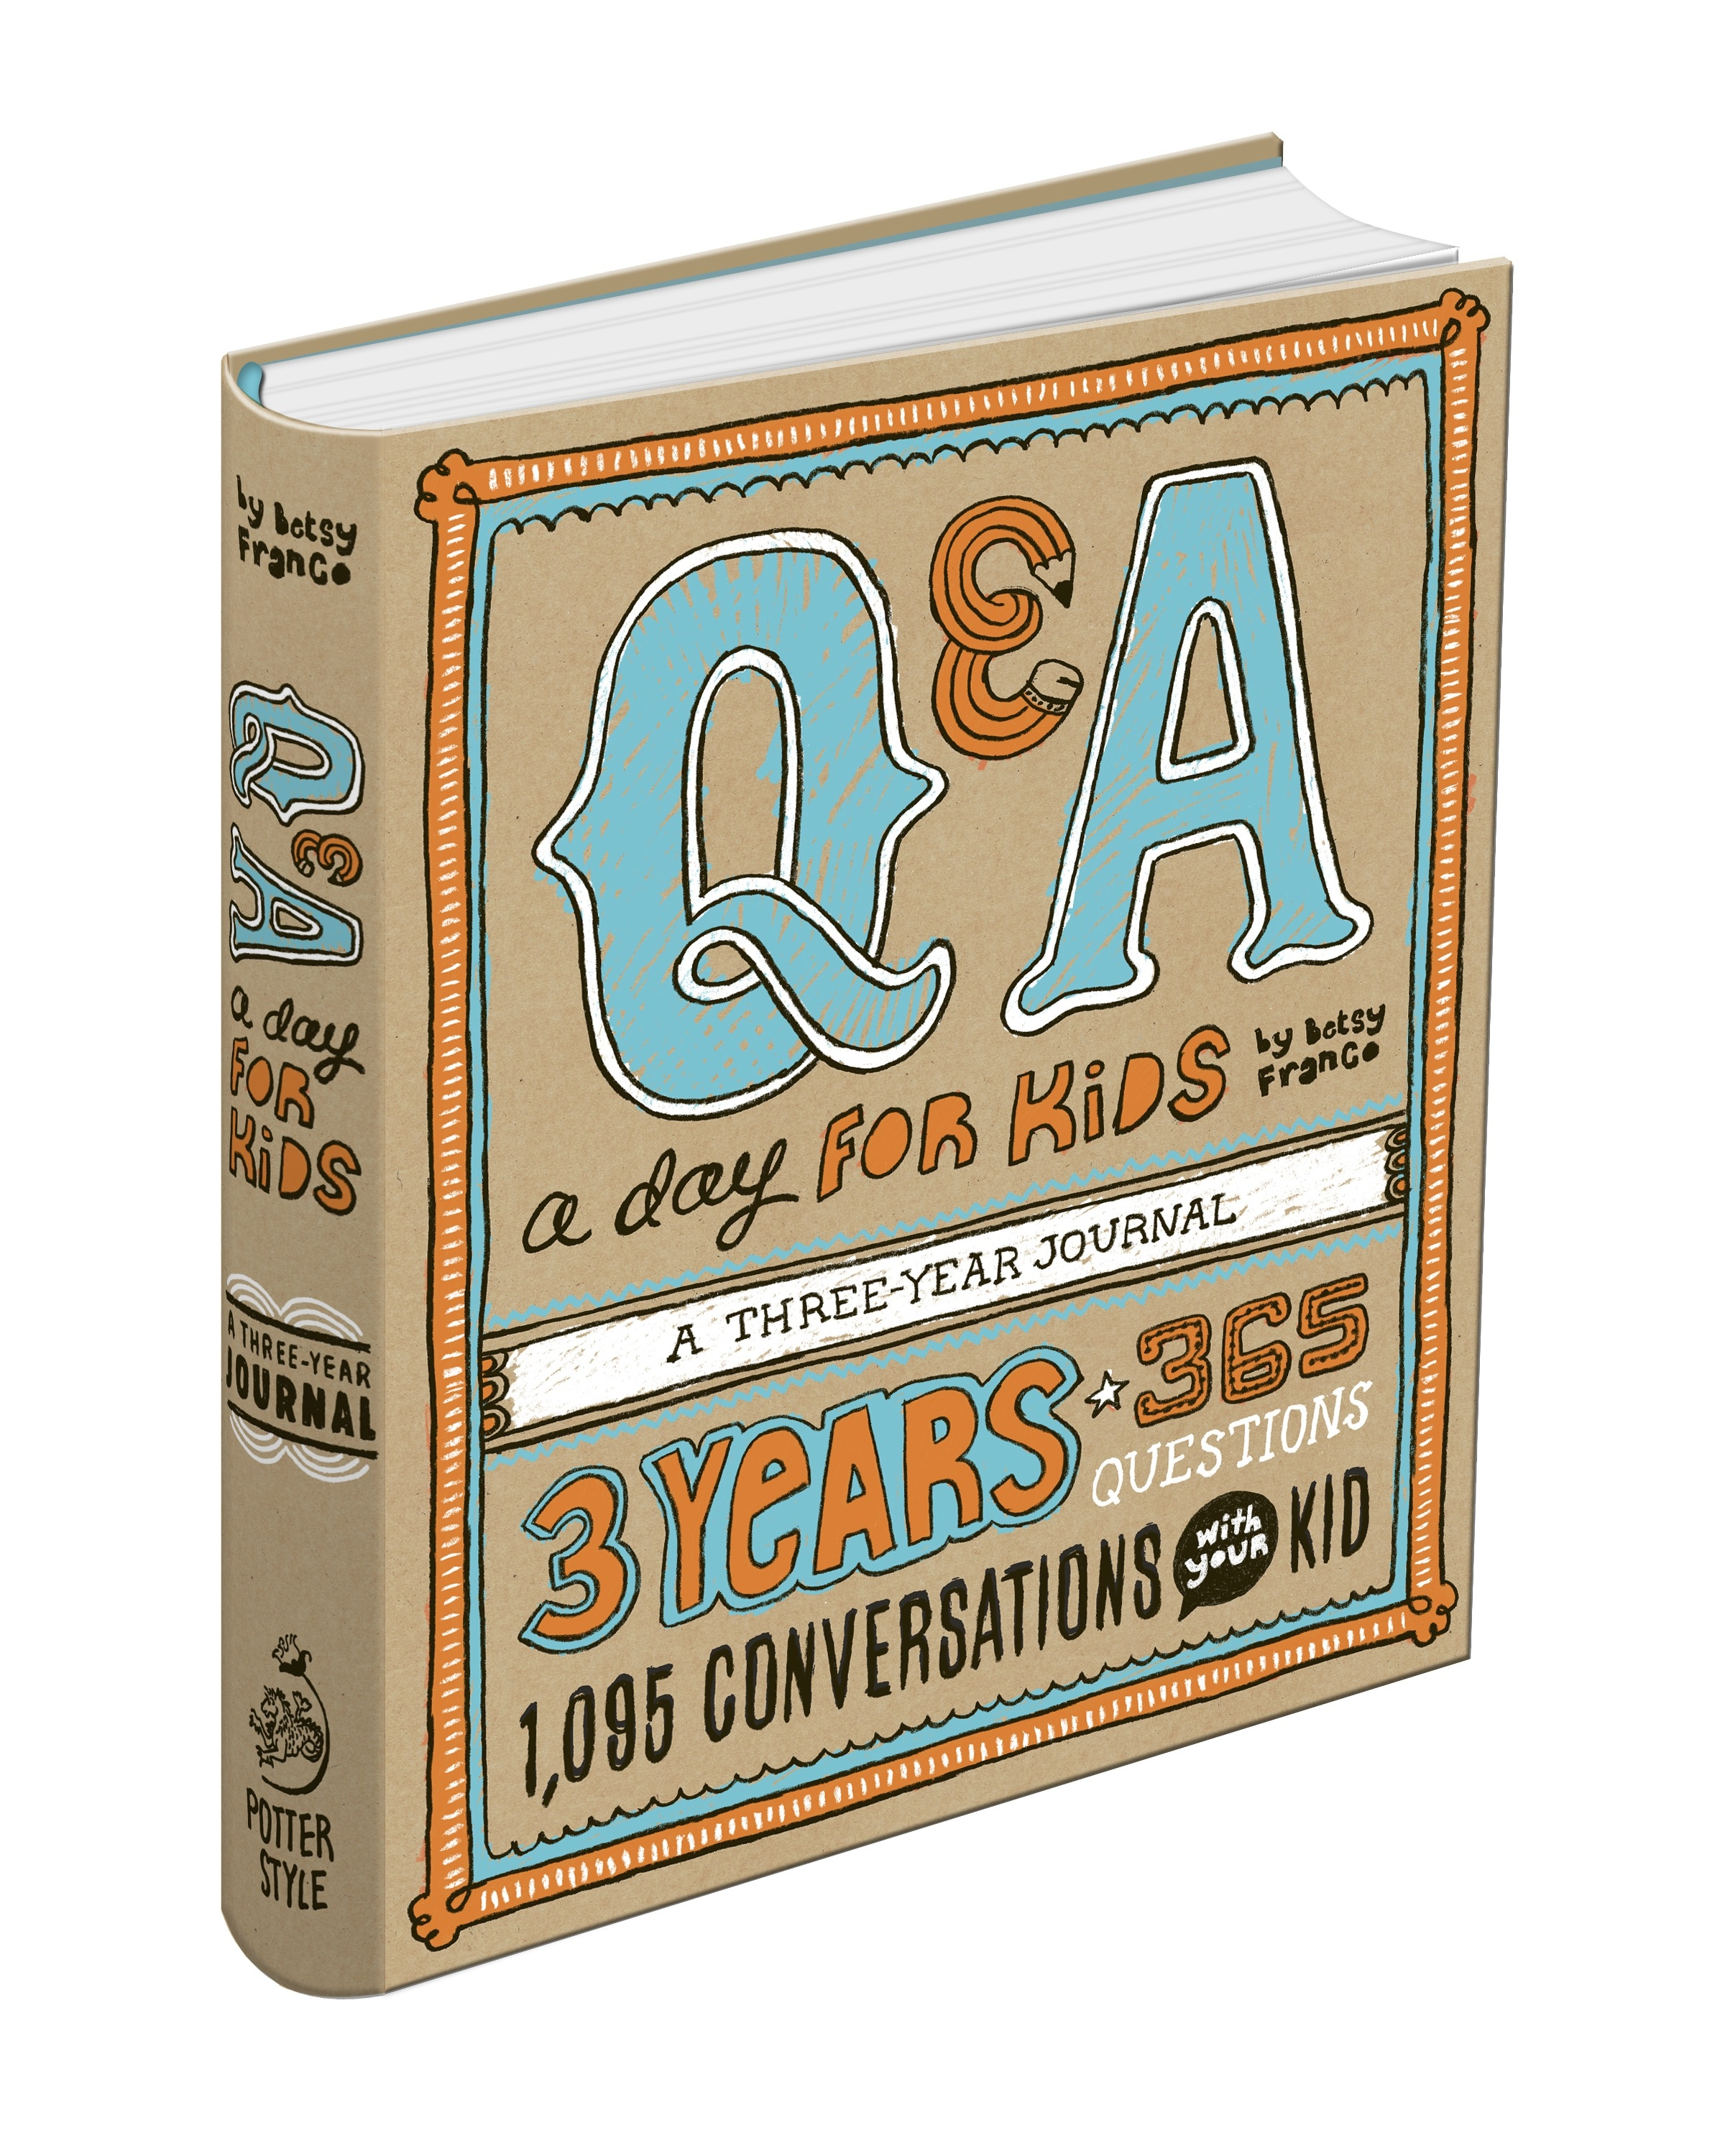 Q & A A Day For Kids by Betsy Franco, ISBN: 9780307952967